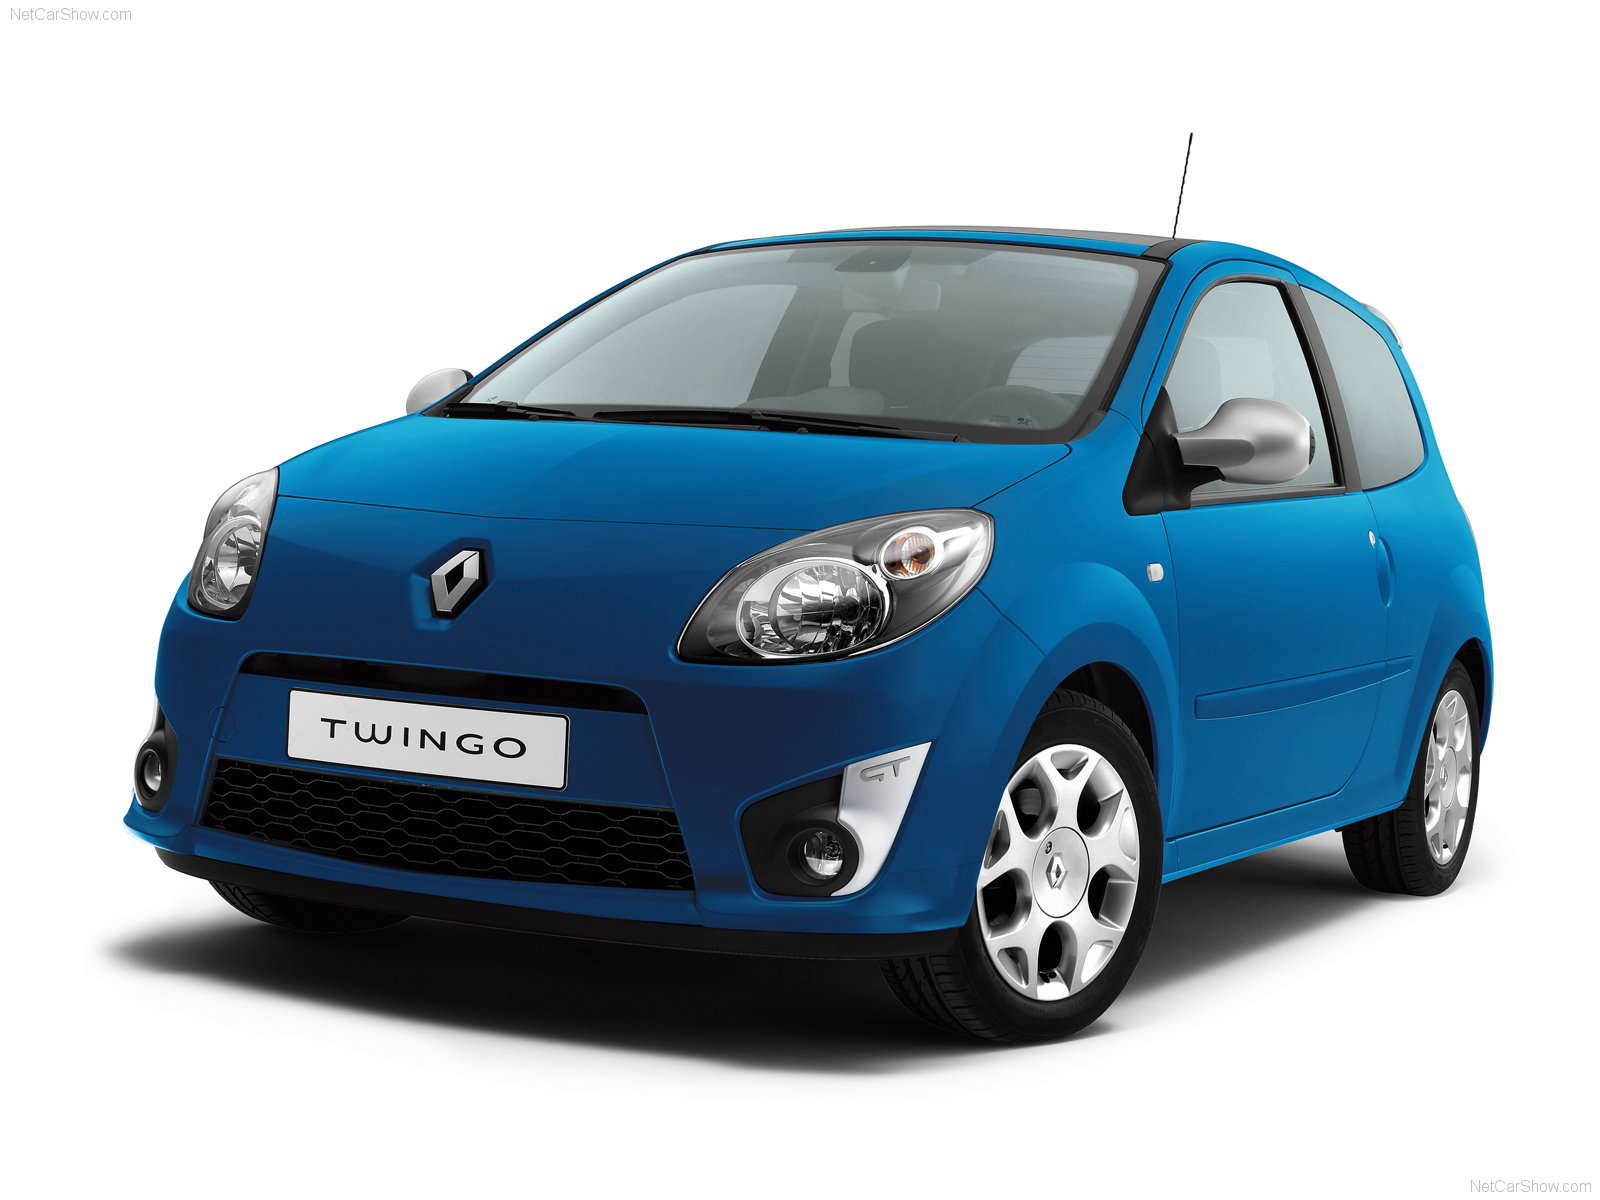 renault twingo picture 42040 renault photo gallery. Black Bedroom Furniture Sets. Home Design Ideas